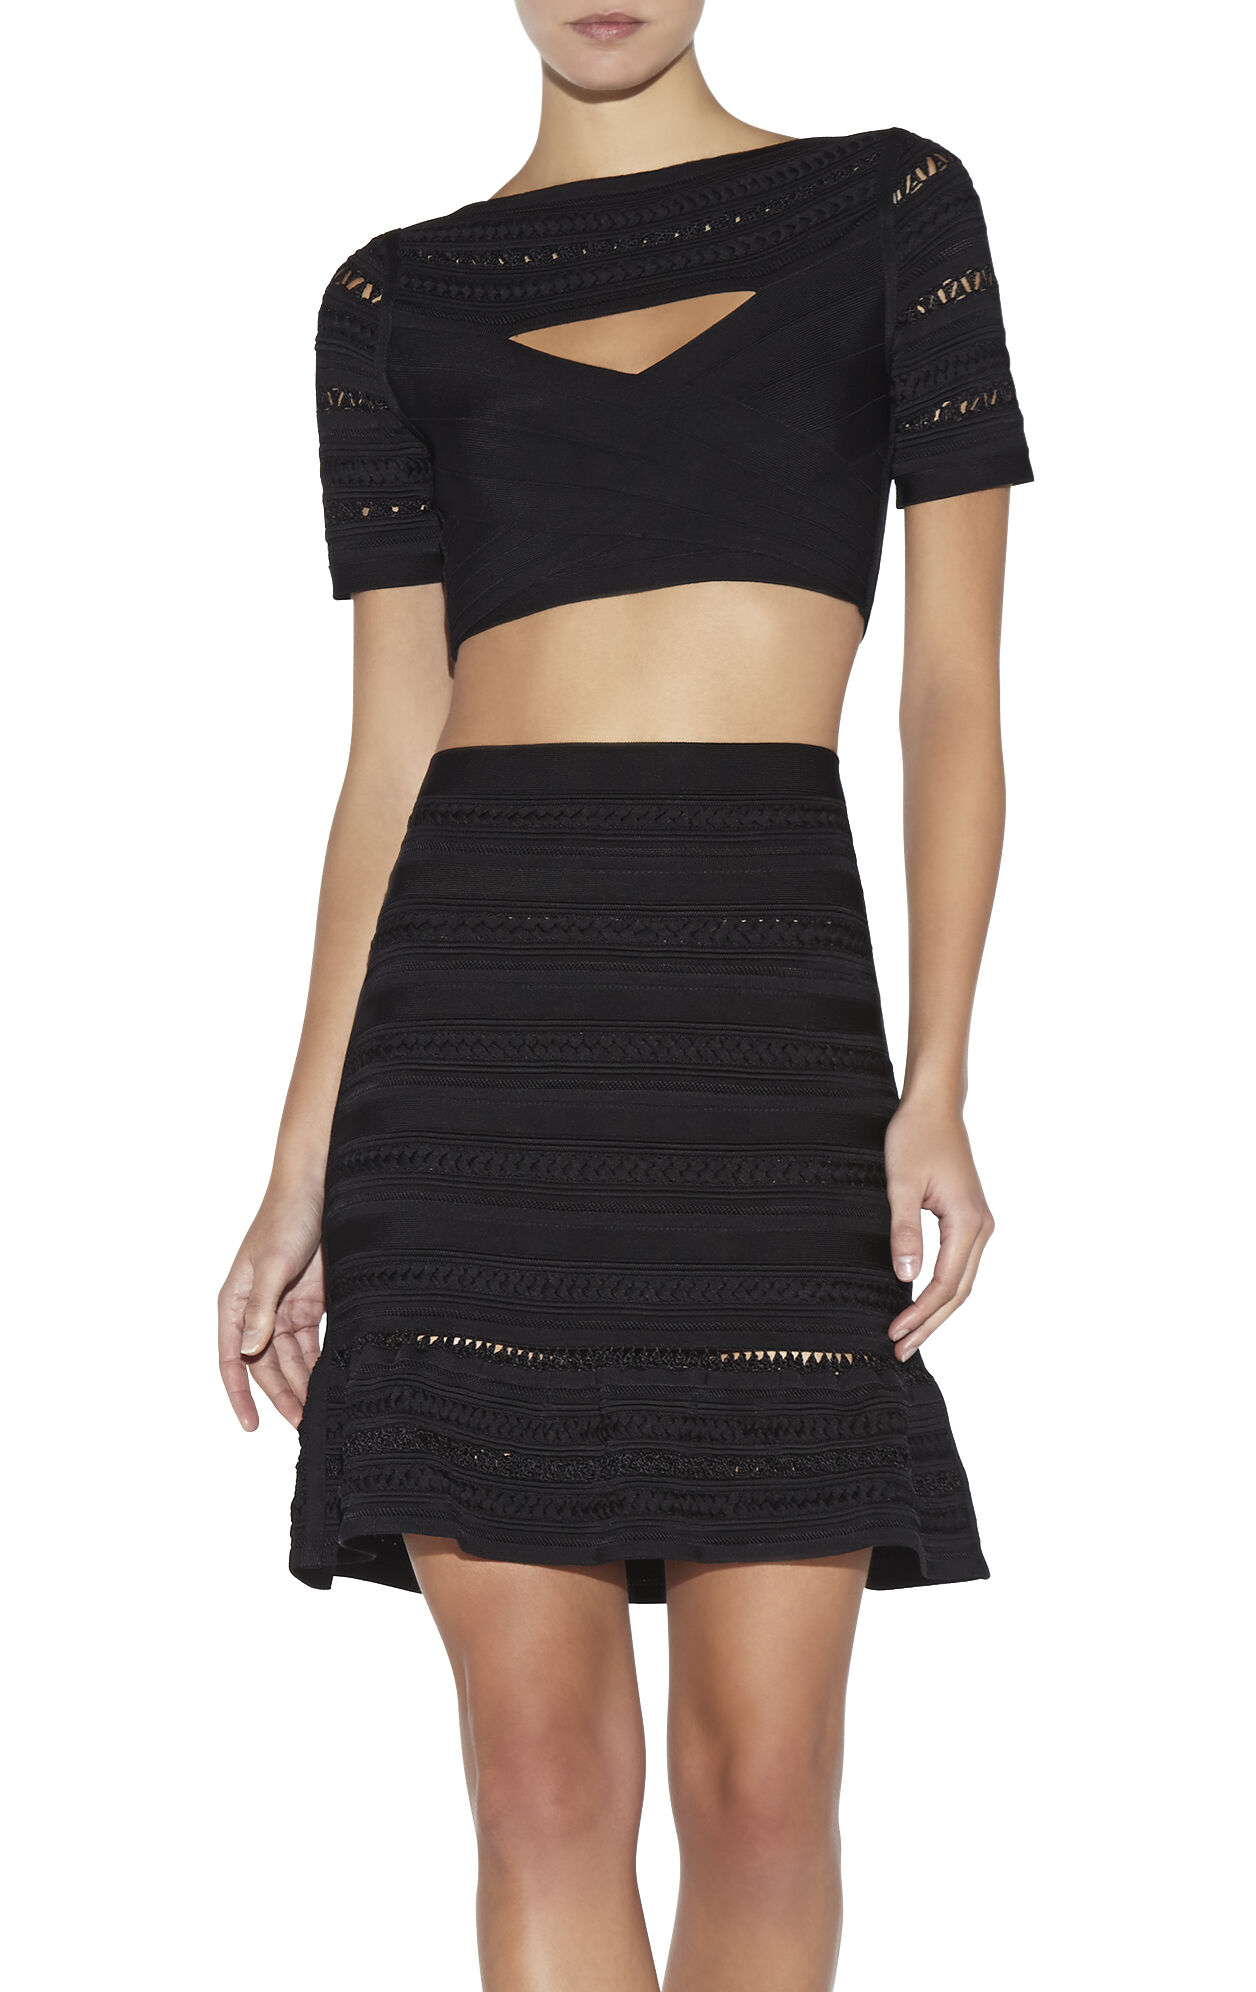 Lorie Braided Ottoman Bandage Crop Top